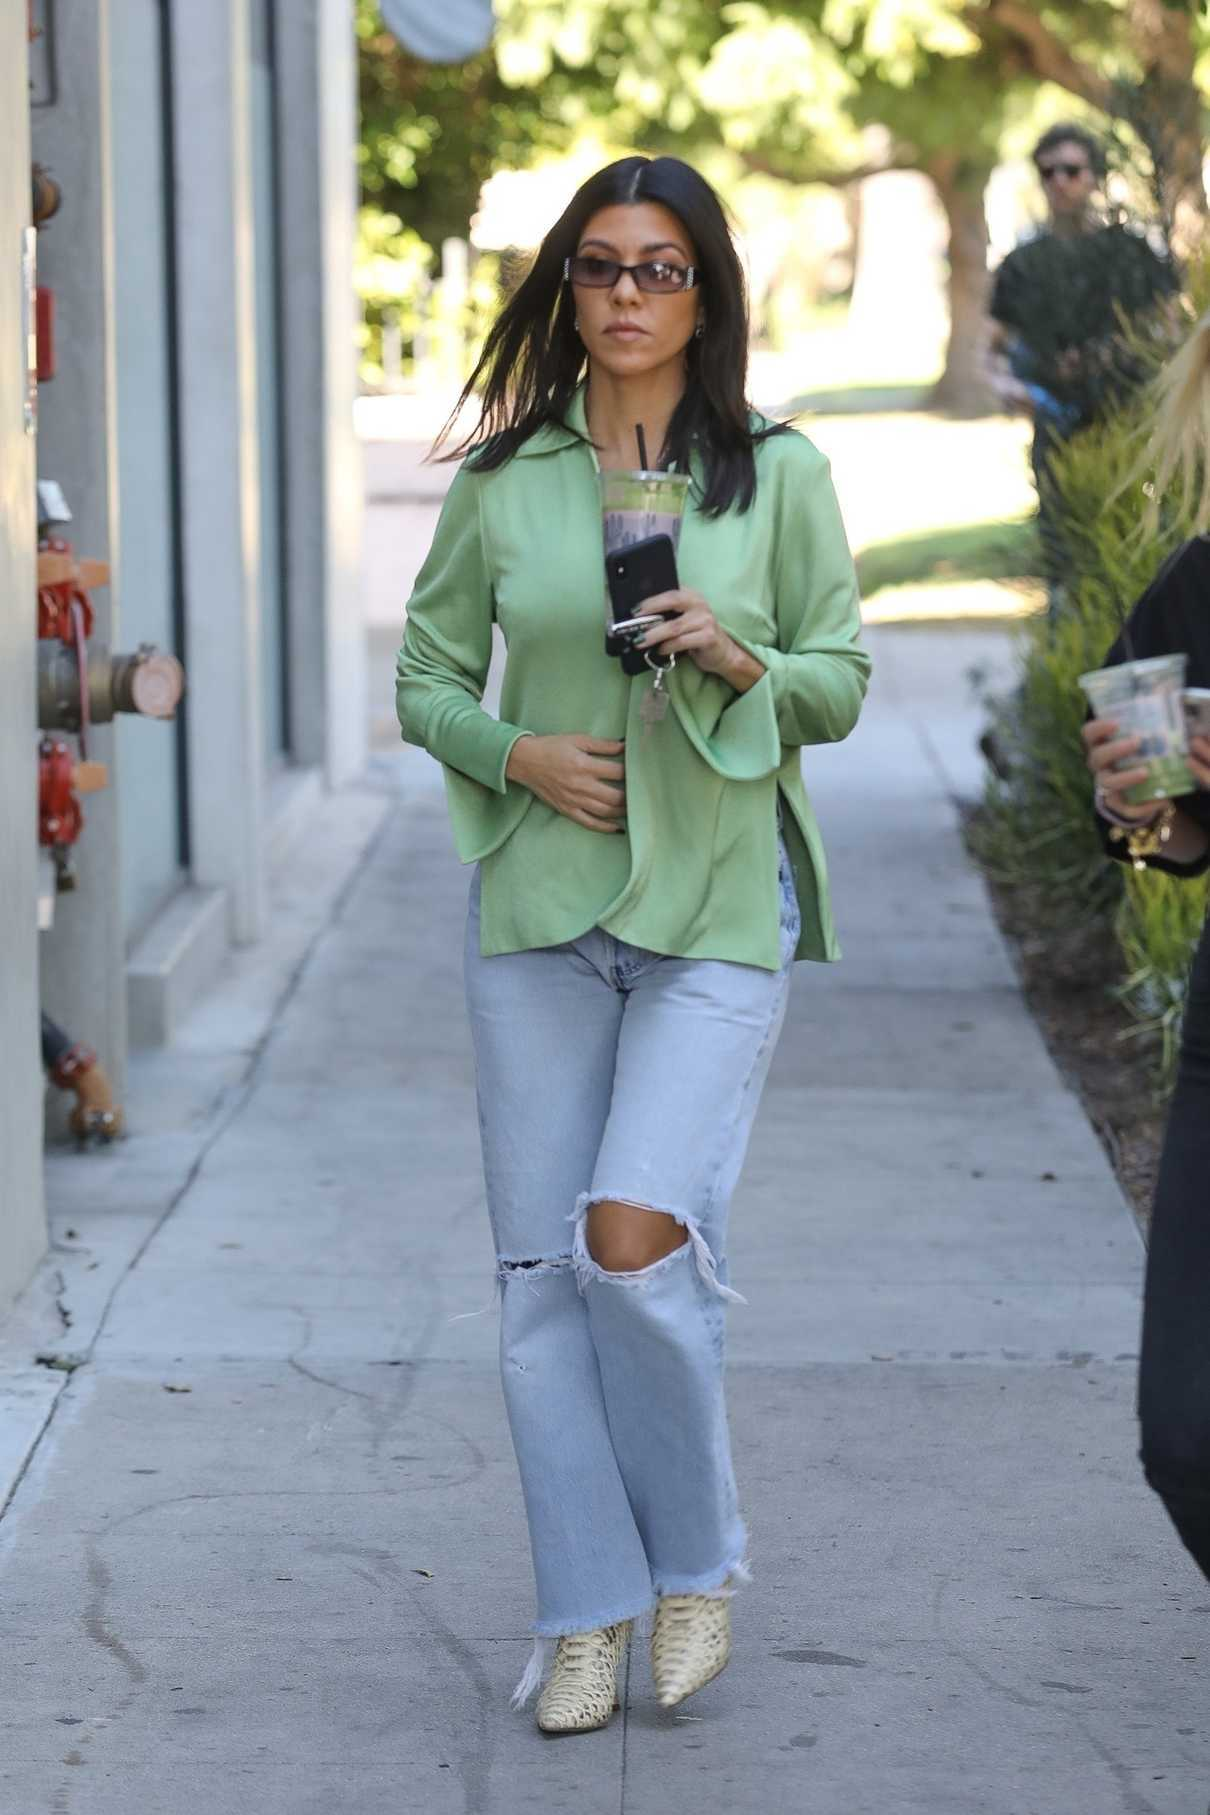 Kourtney Kardashian in a Green Blouse